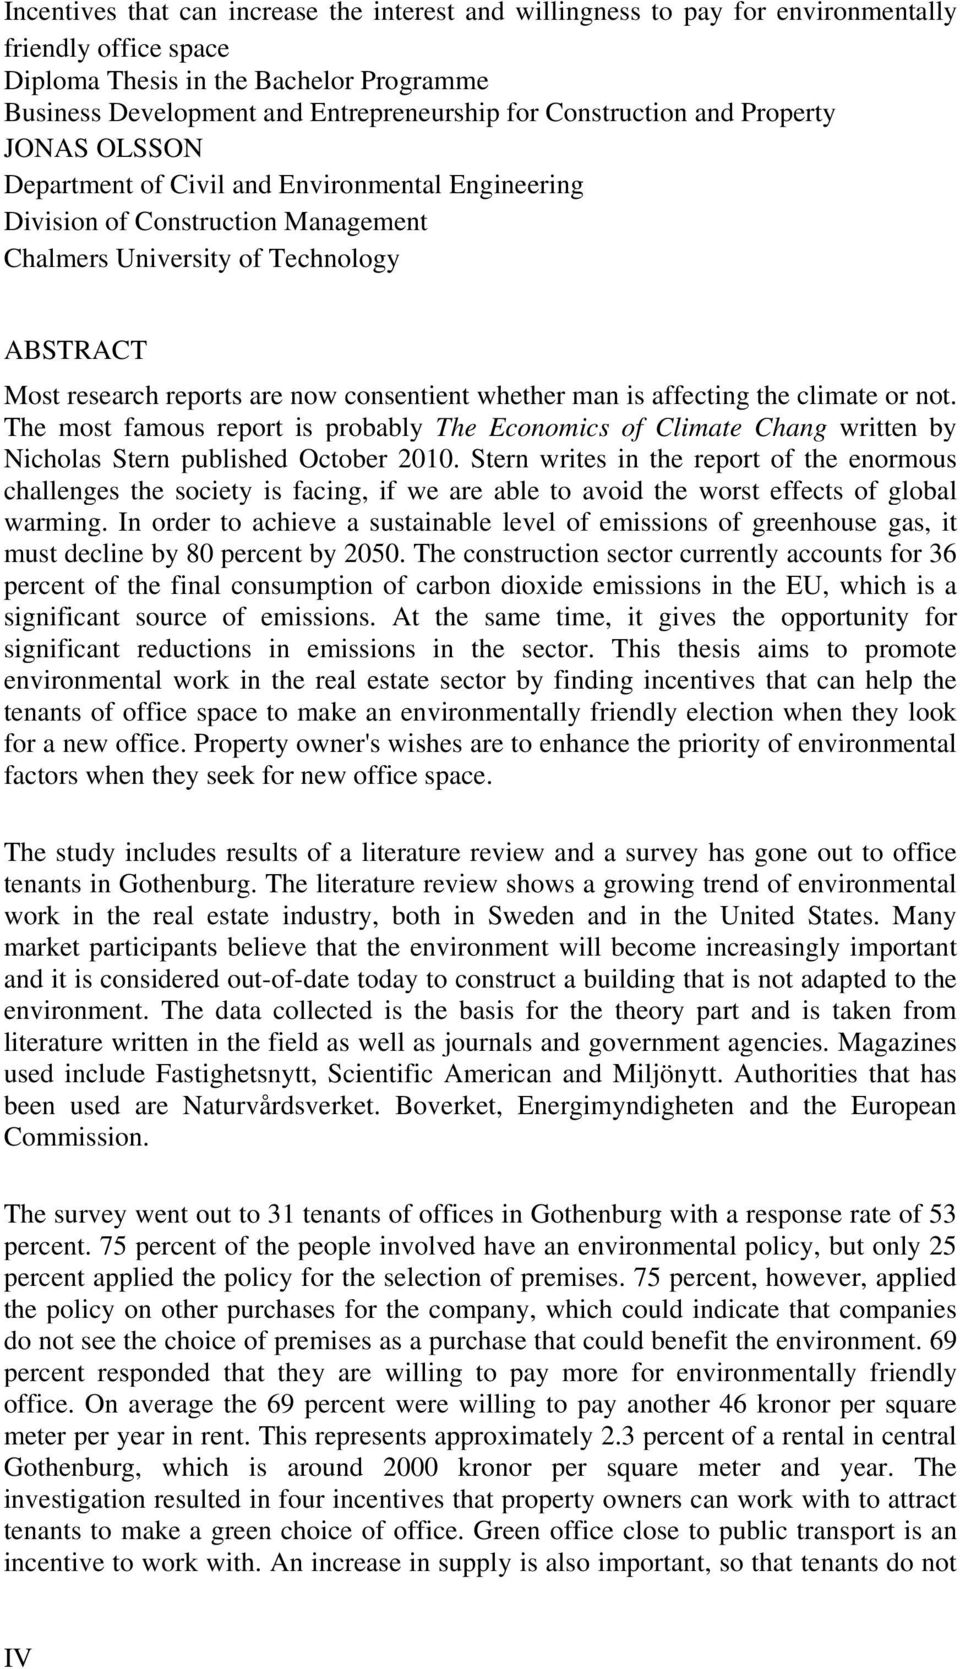 consentient whether man is affecting the climate or not. The most famous report is probably The Economics of Climate Chang written by Nicholas Stern published October 2010.